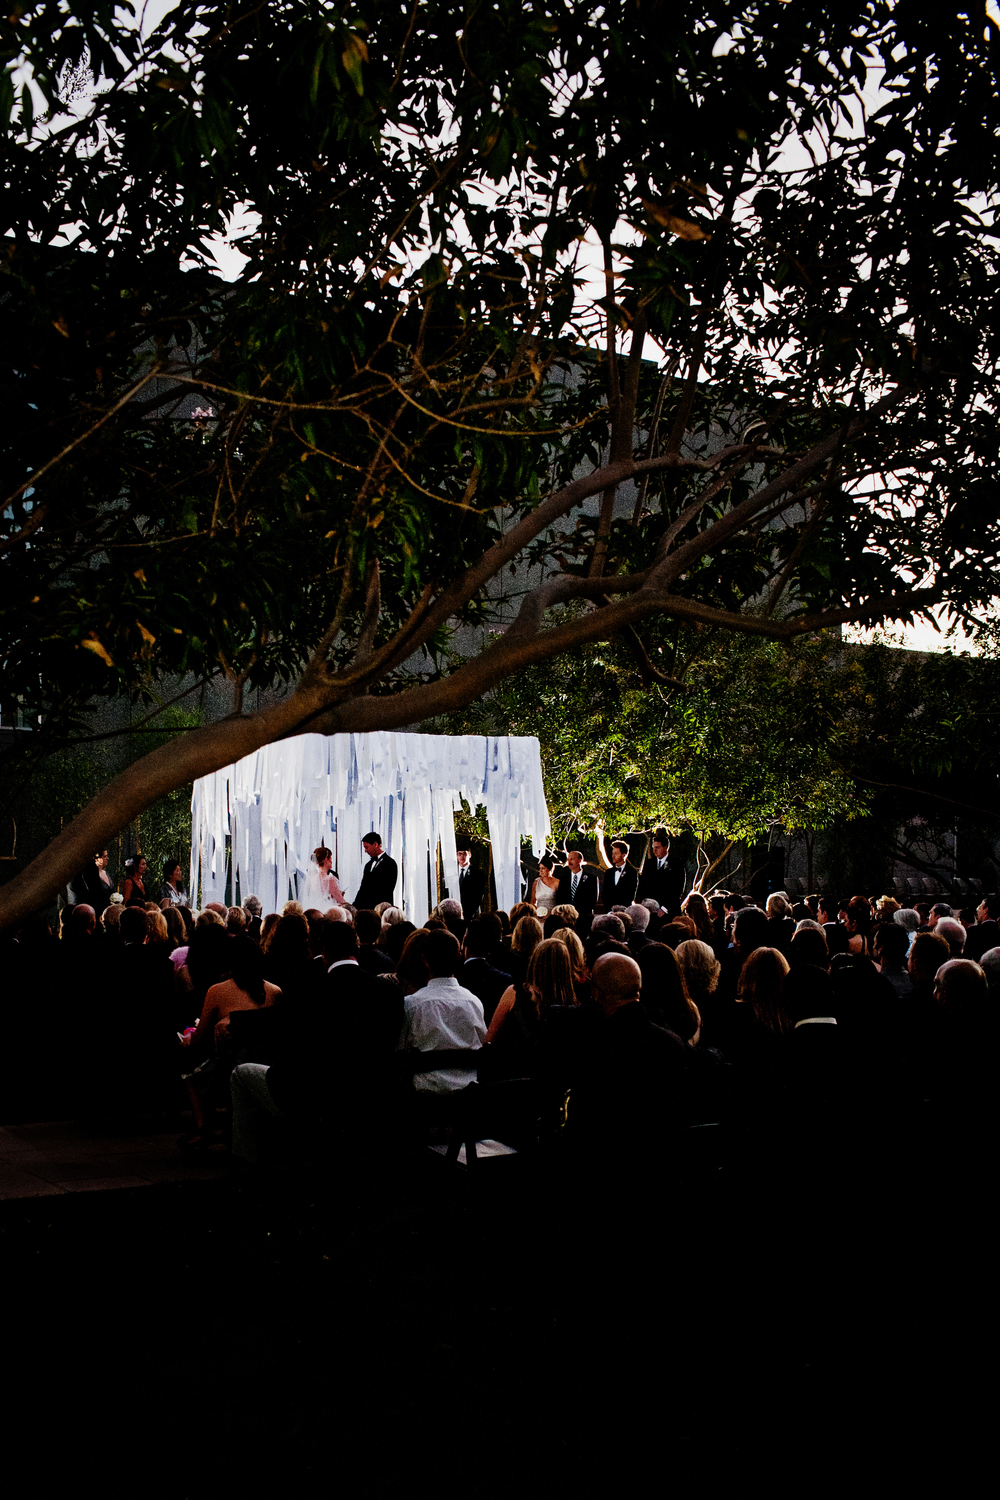 Phoenix_Art_Museum_Wedding-27.JPG